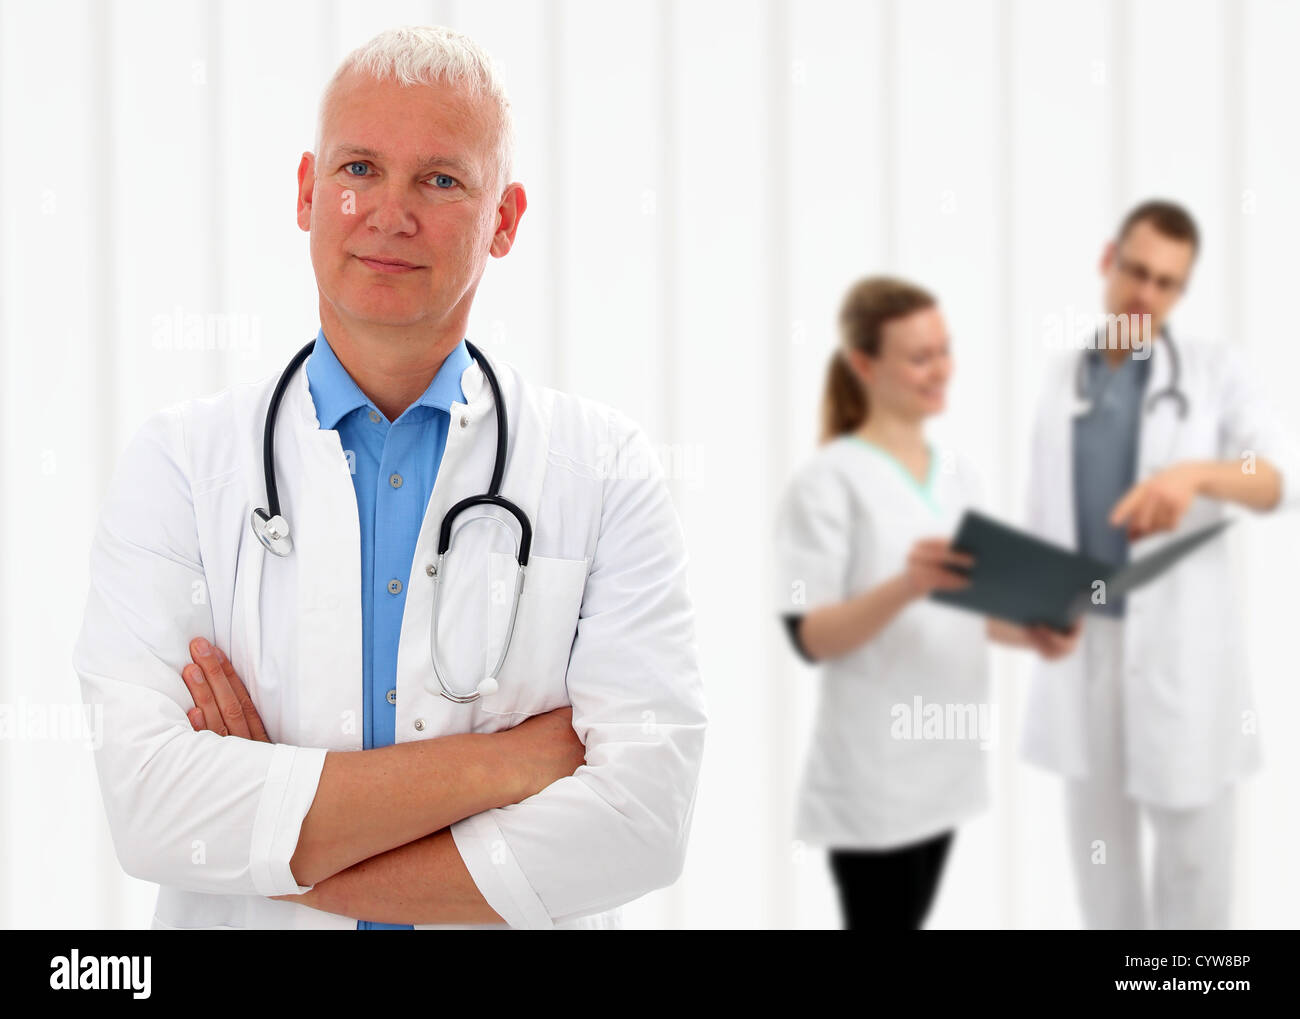 Senior doctor with his arms crossed and a stethoscope around his neck standing in front of his colleagues with shallow - Stock Image